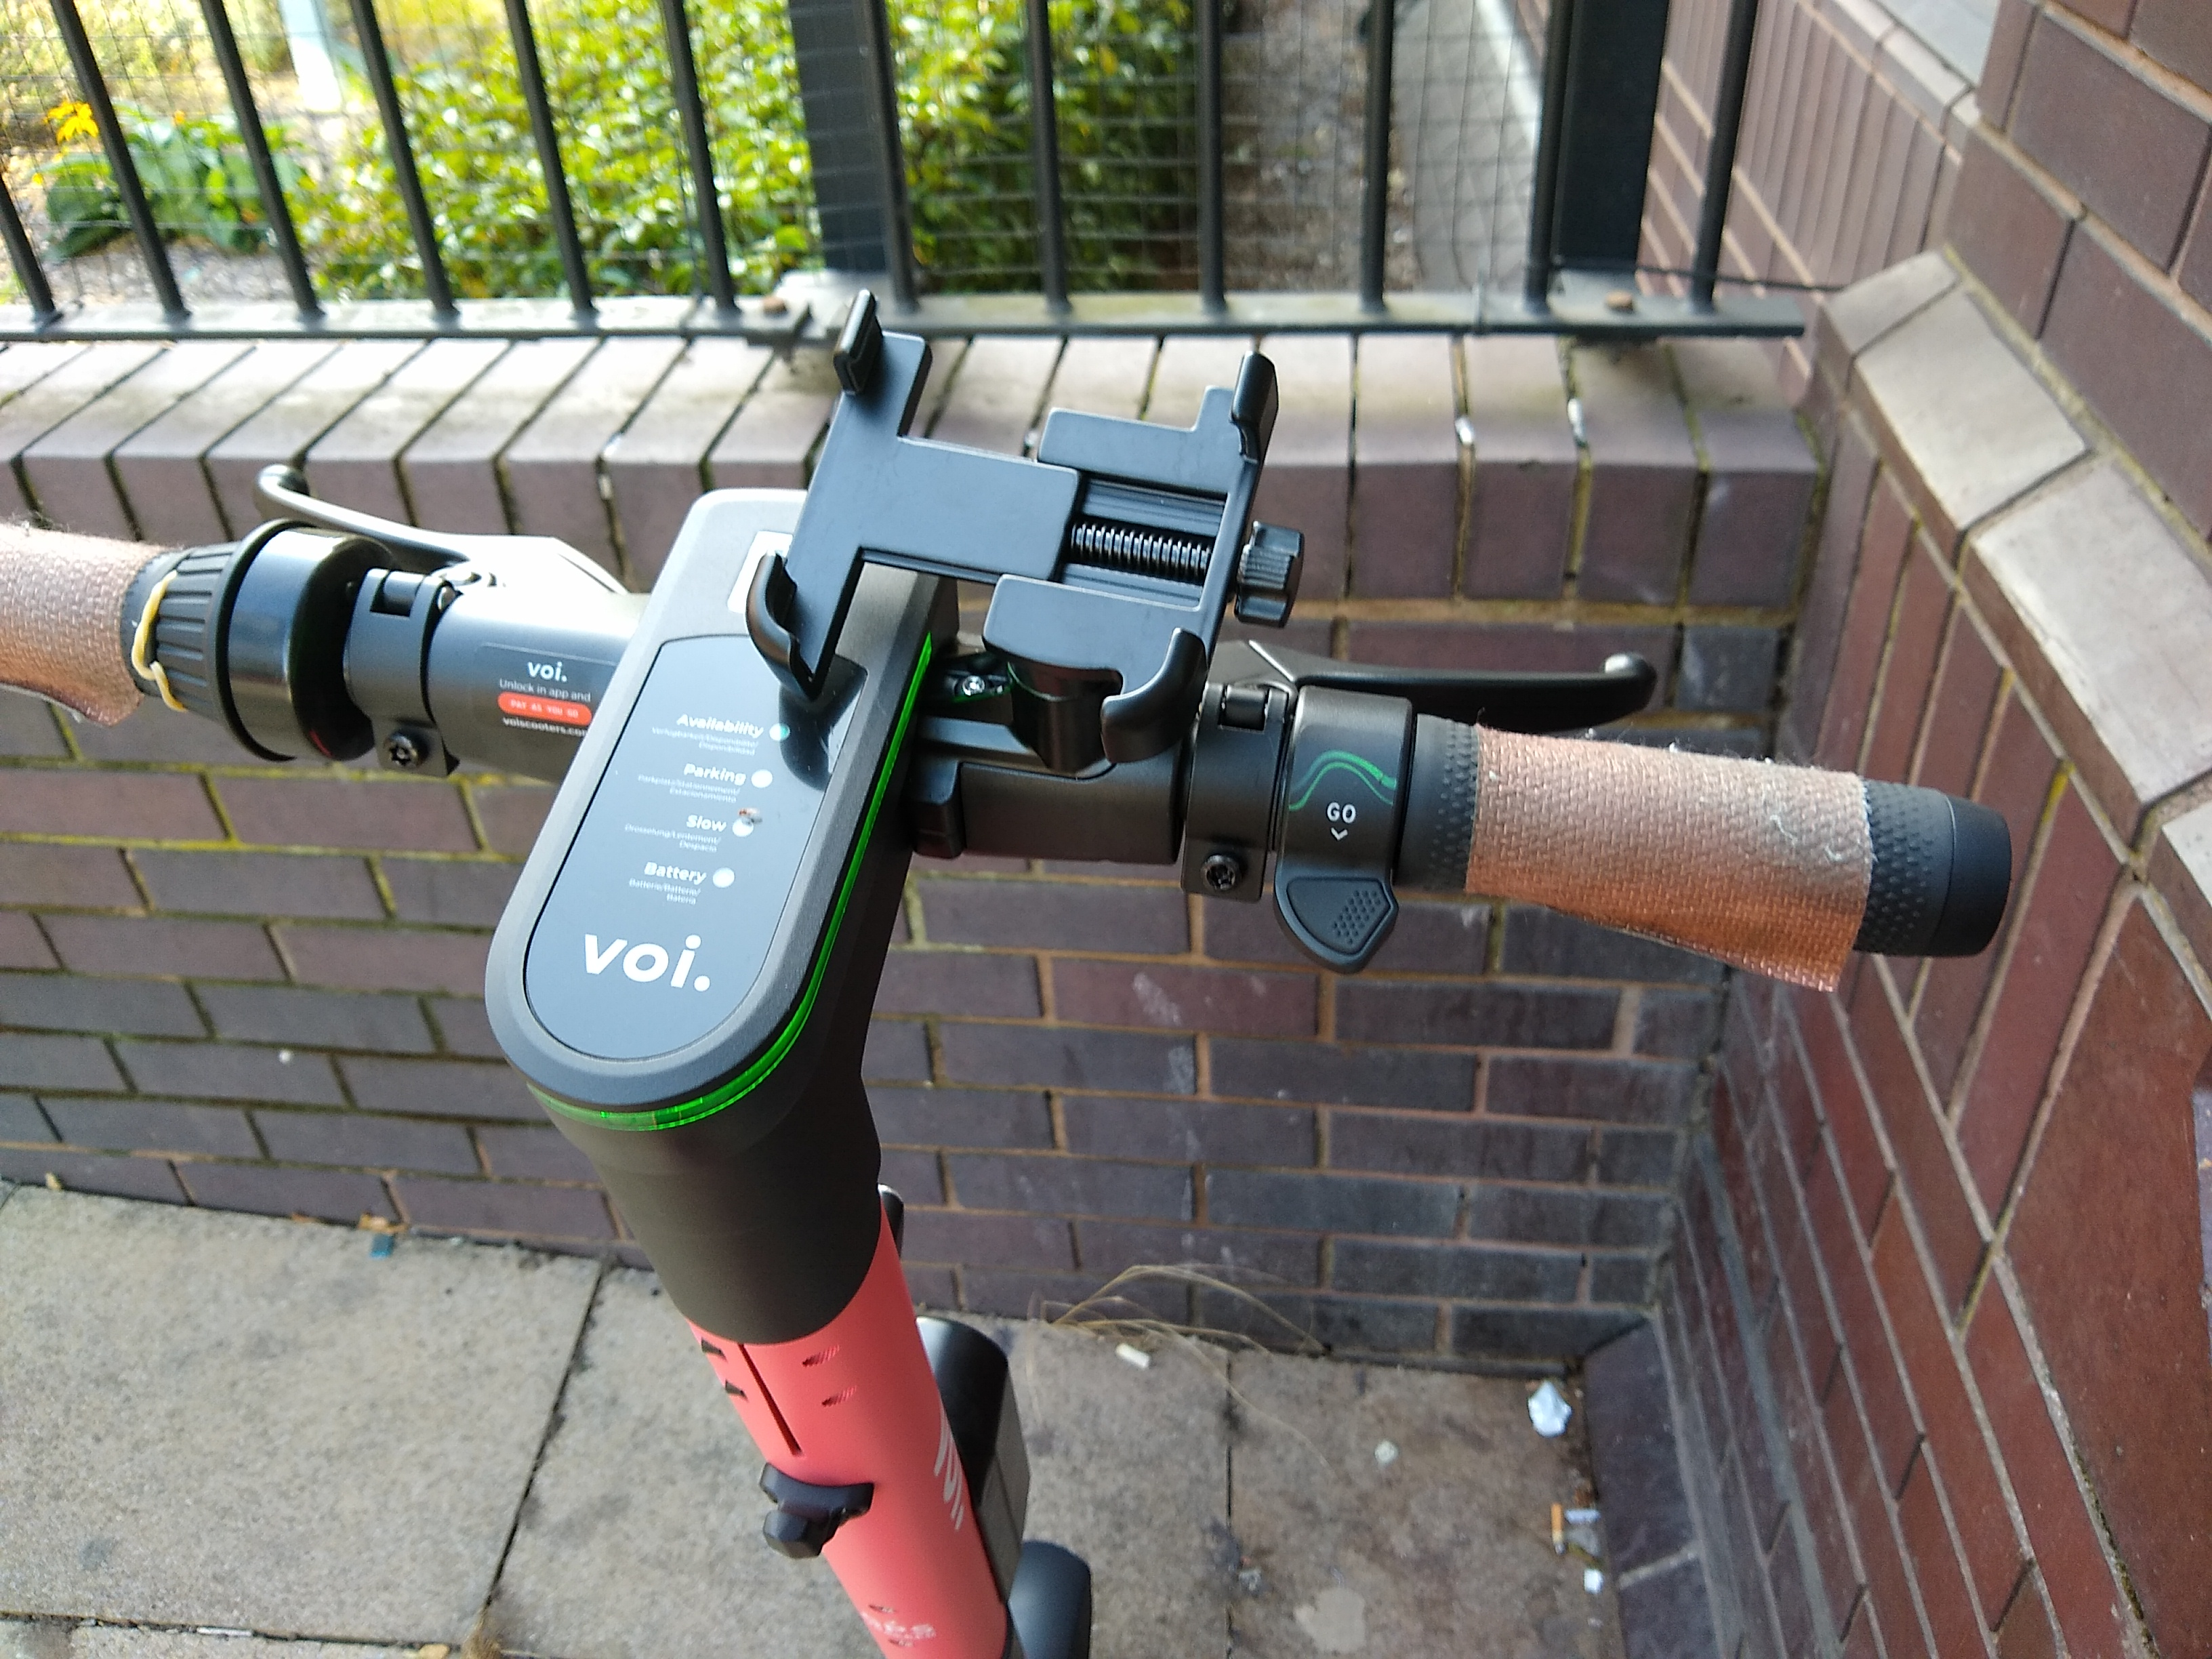 Voi scooter handlebars, showing the controls